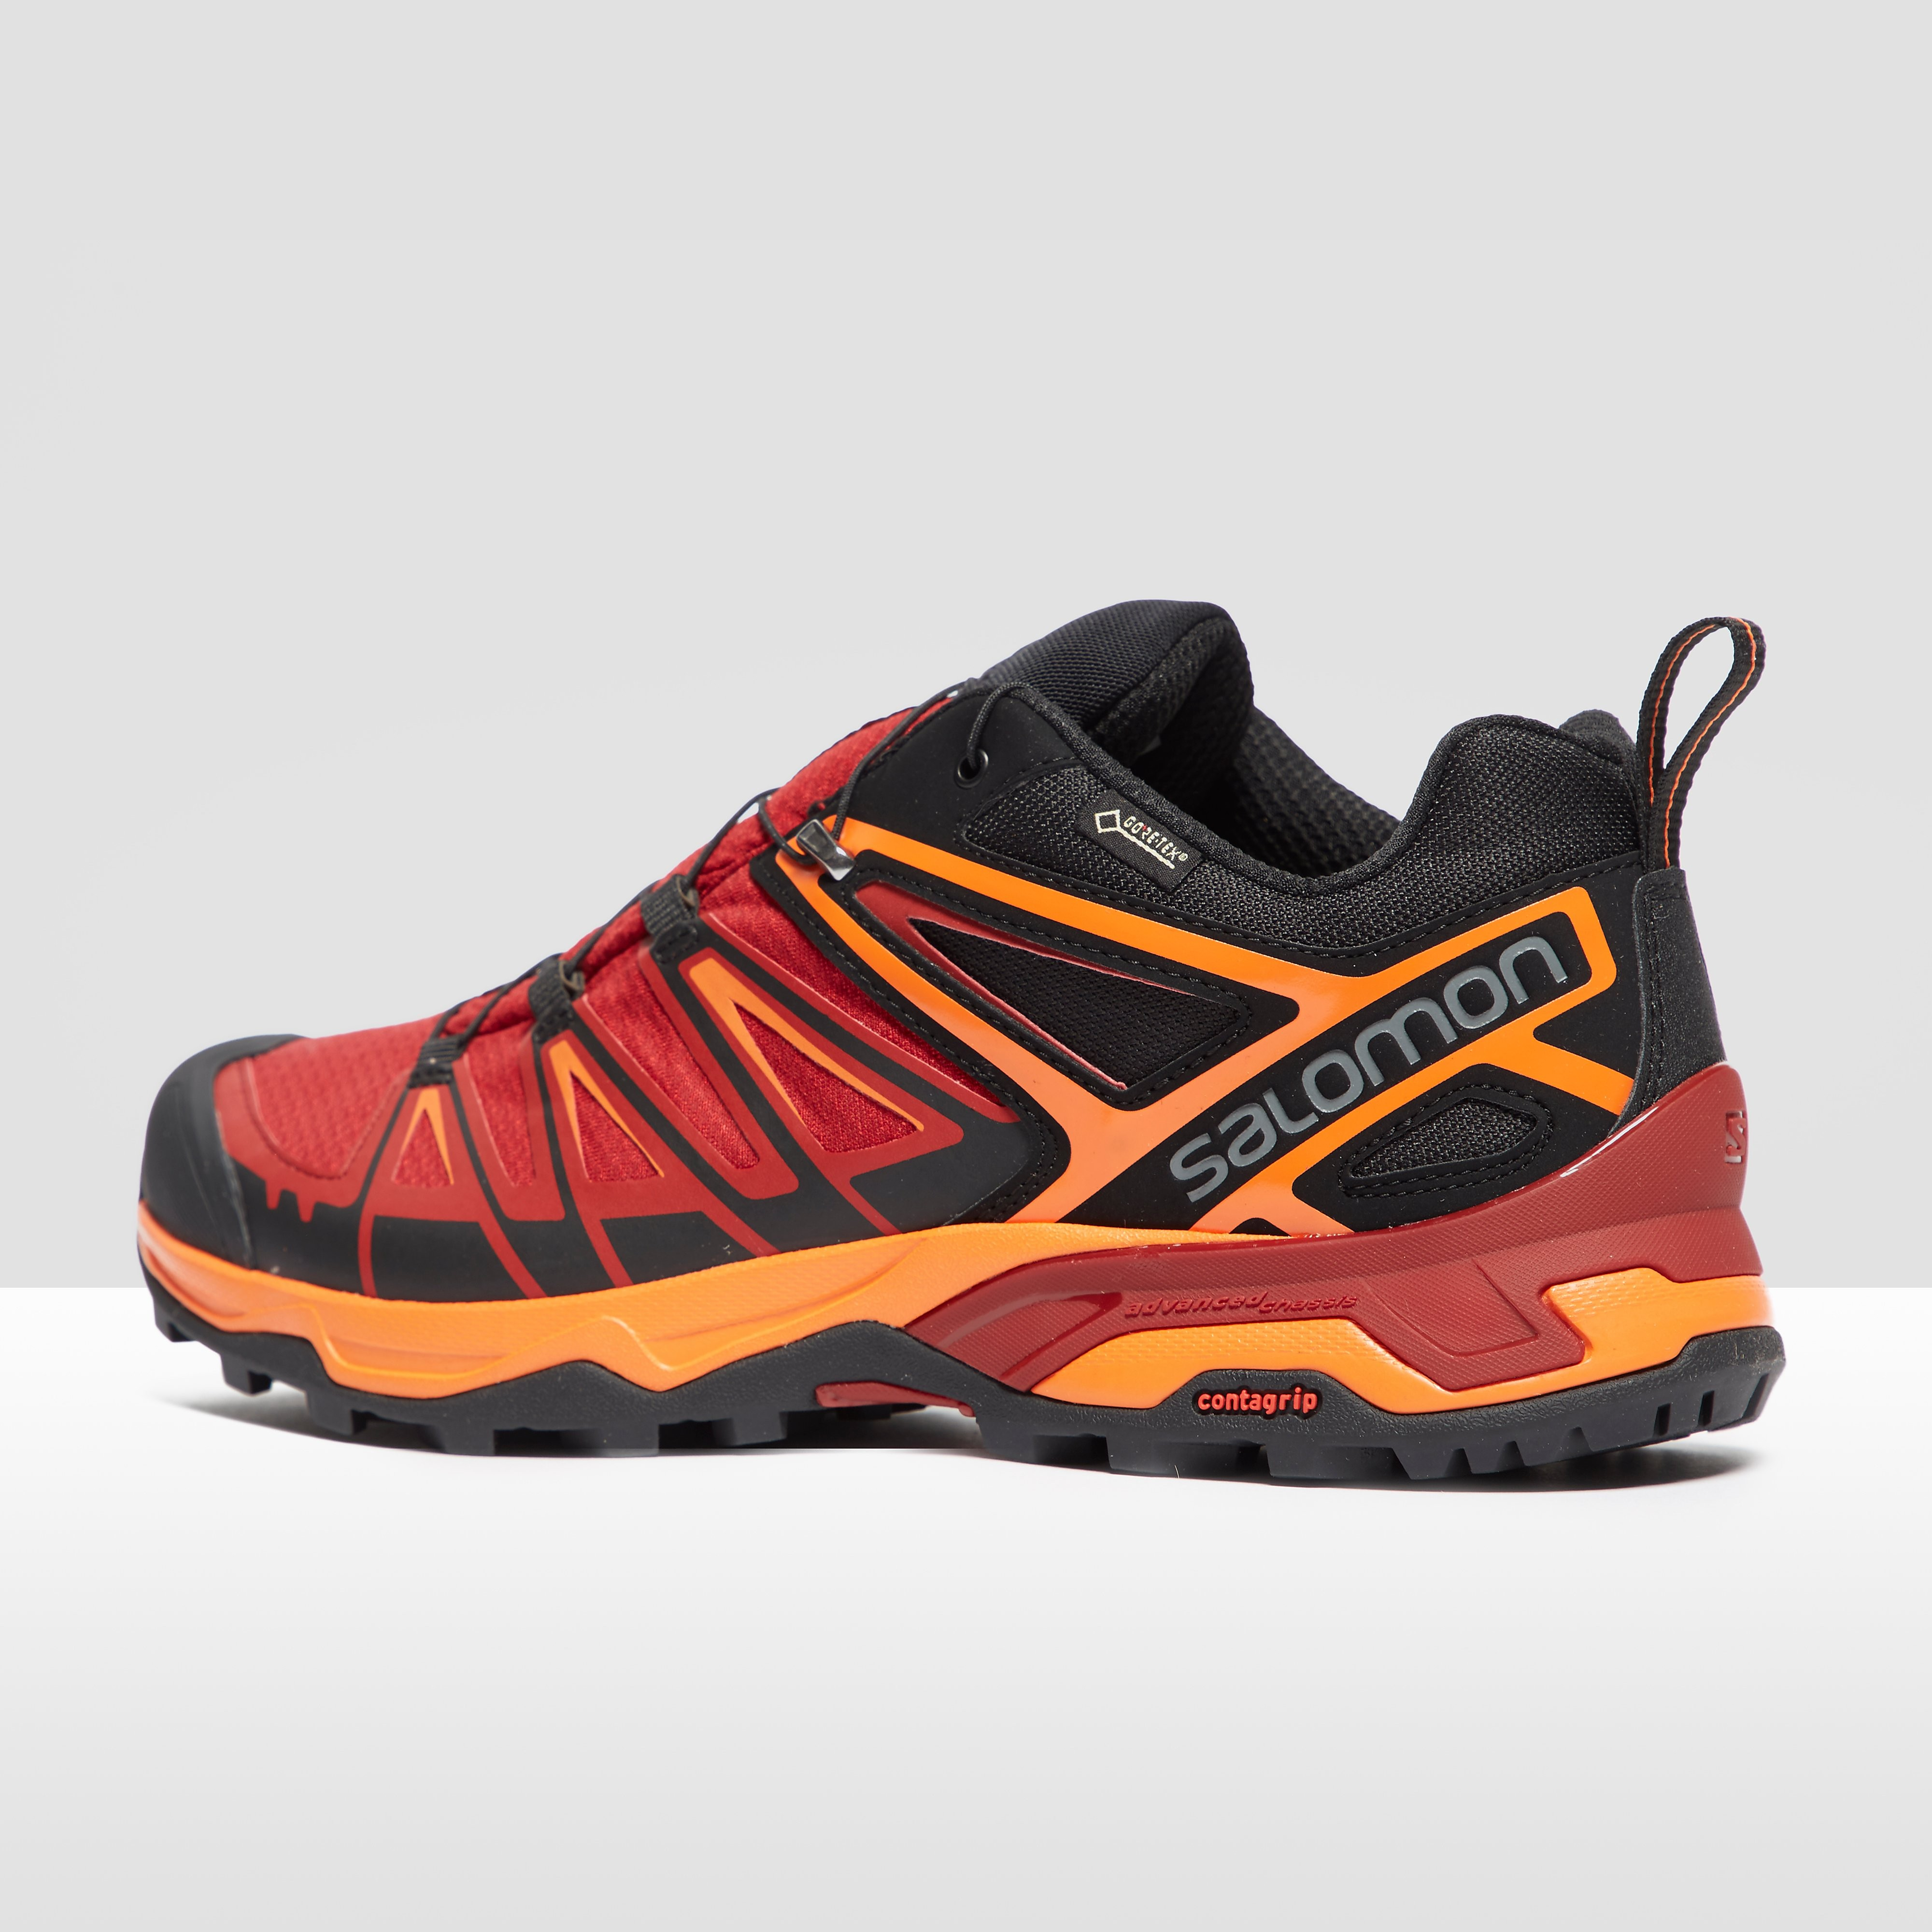 Salomon X ULTRA 3 GTX Men's Hiking Shoes